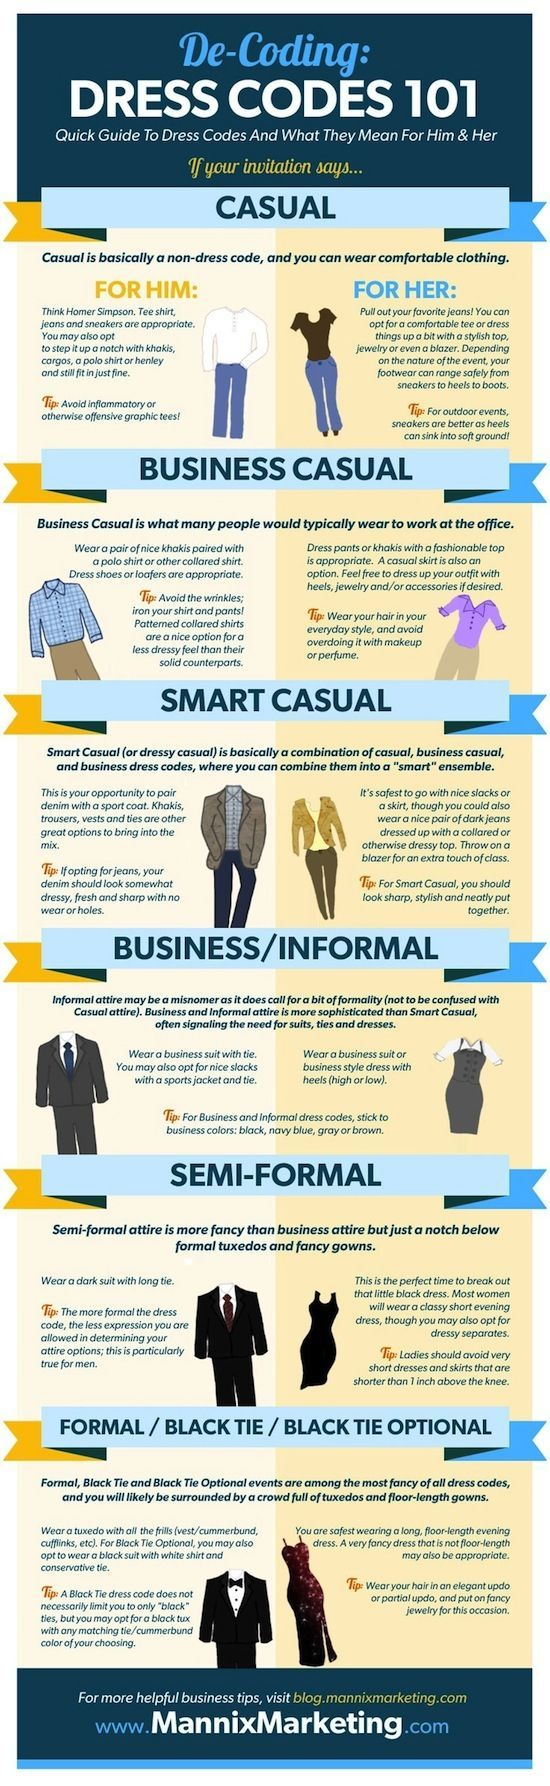 Decoding Dress Code 101: A Quick Guide to Dress Codes and What They Mean for HIm and Her